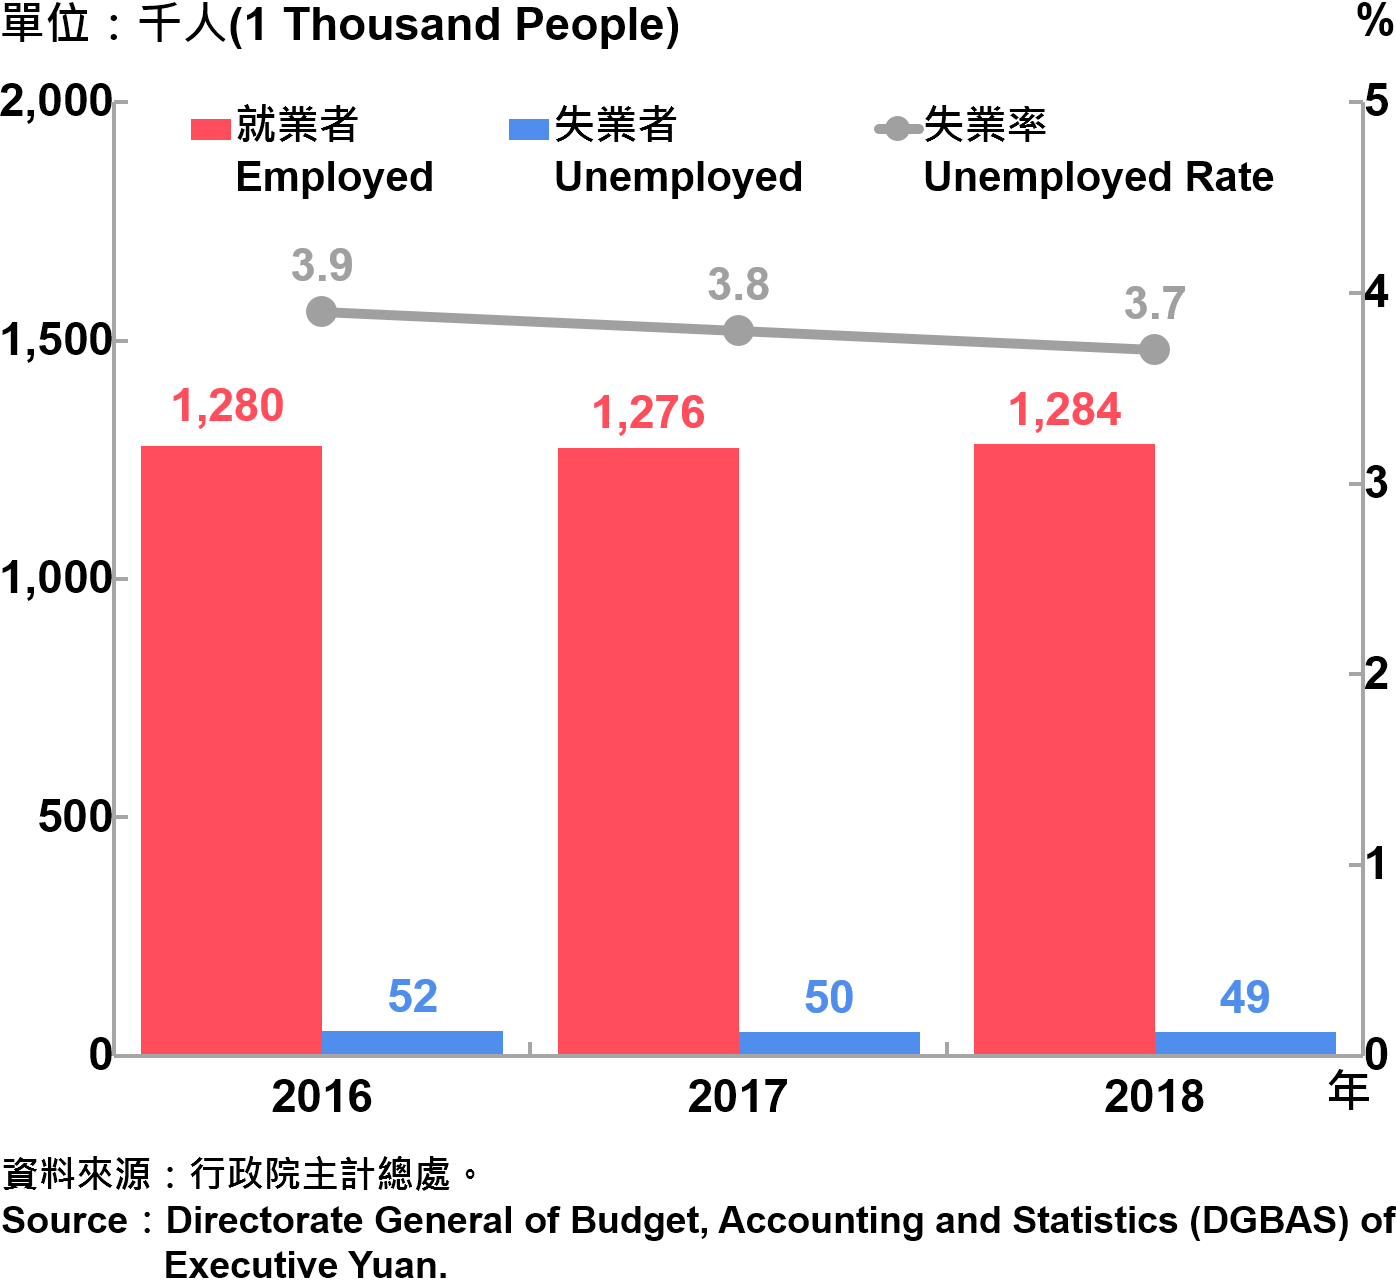 臺北市勞動力人口統計—2018 Labor Force Statistics in Taipei—2018